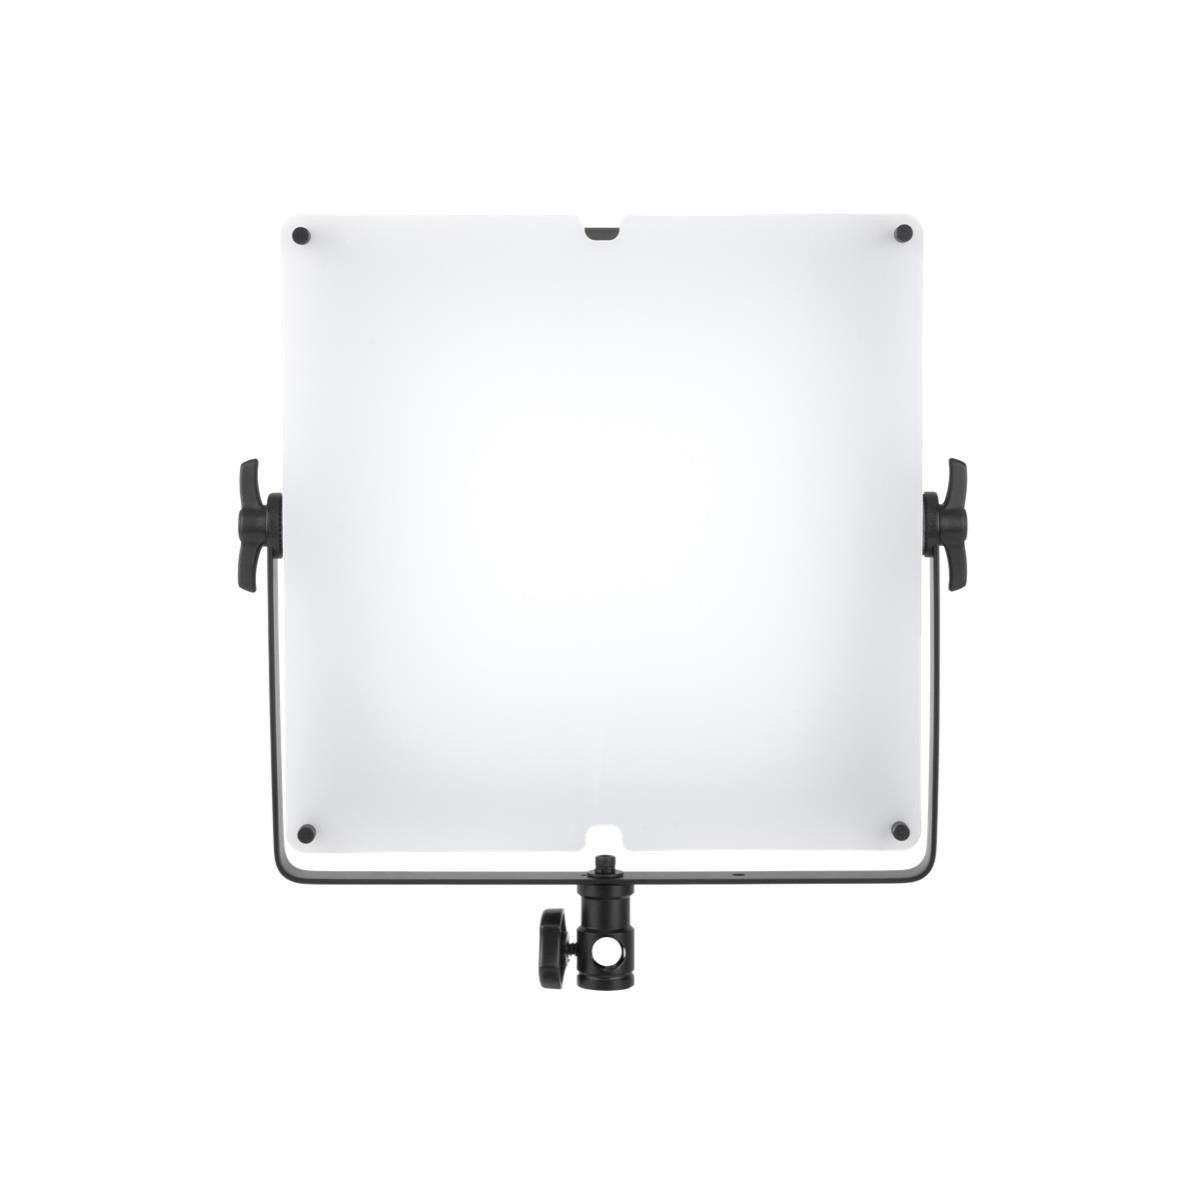 F&V K4000S Plus Bi-color LED Studio Panel 3-light Kit (Anton Bauer) 109041530231ab - Lighting-Studio - F&V Lighting USA - Helix Camera